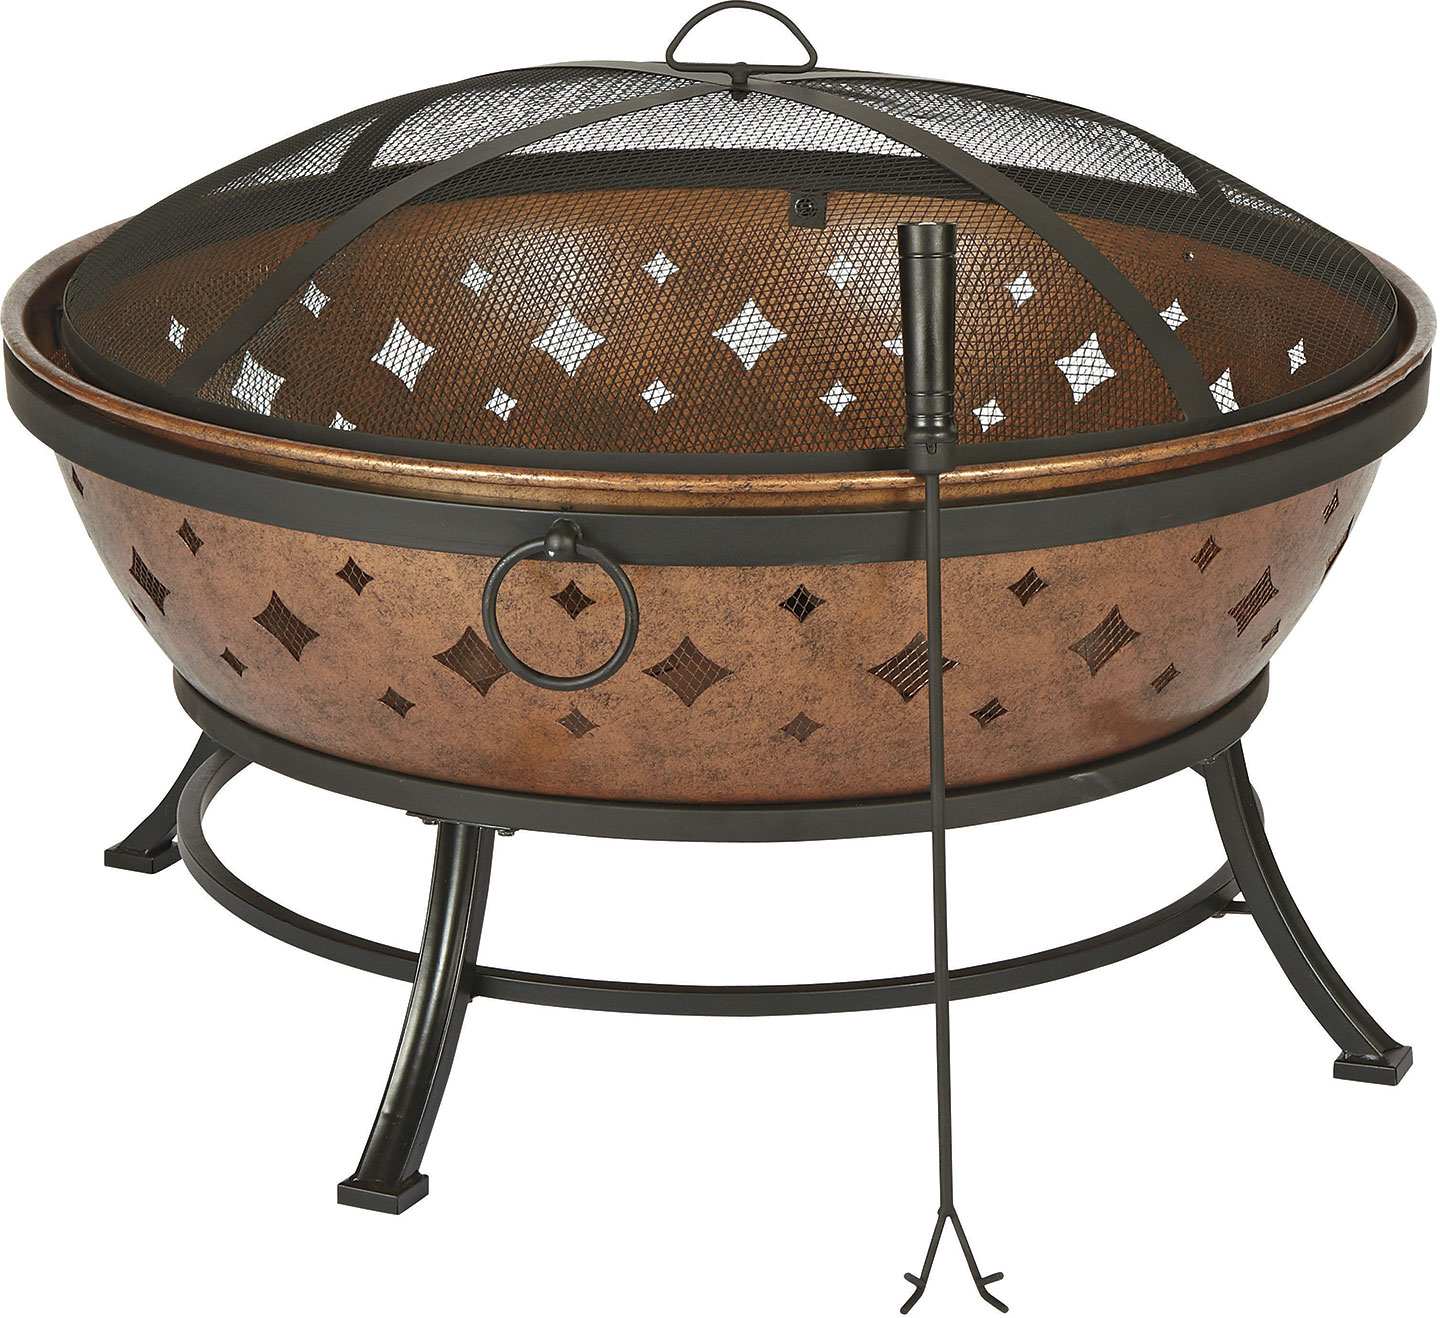 Outdoor Living - Great Lakes Ace Hardware Store on Propane Fire Pit Ace Hardware id=70218